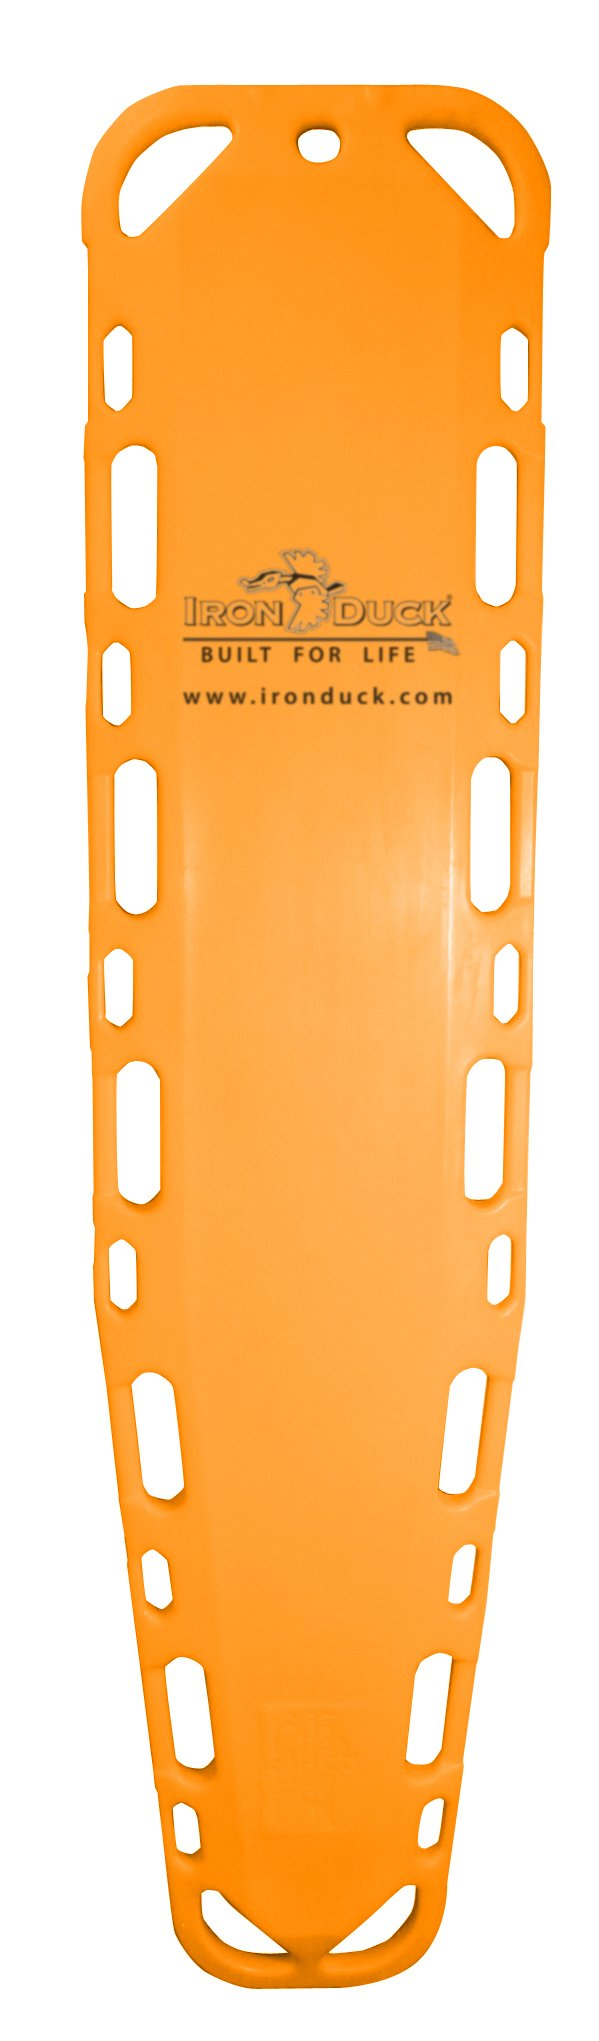 Iron Duck 35775-Orange Ultra Vue-16 Spinal Immobilization Backboard